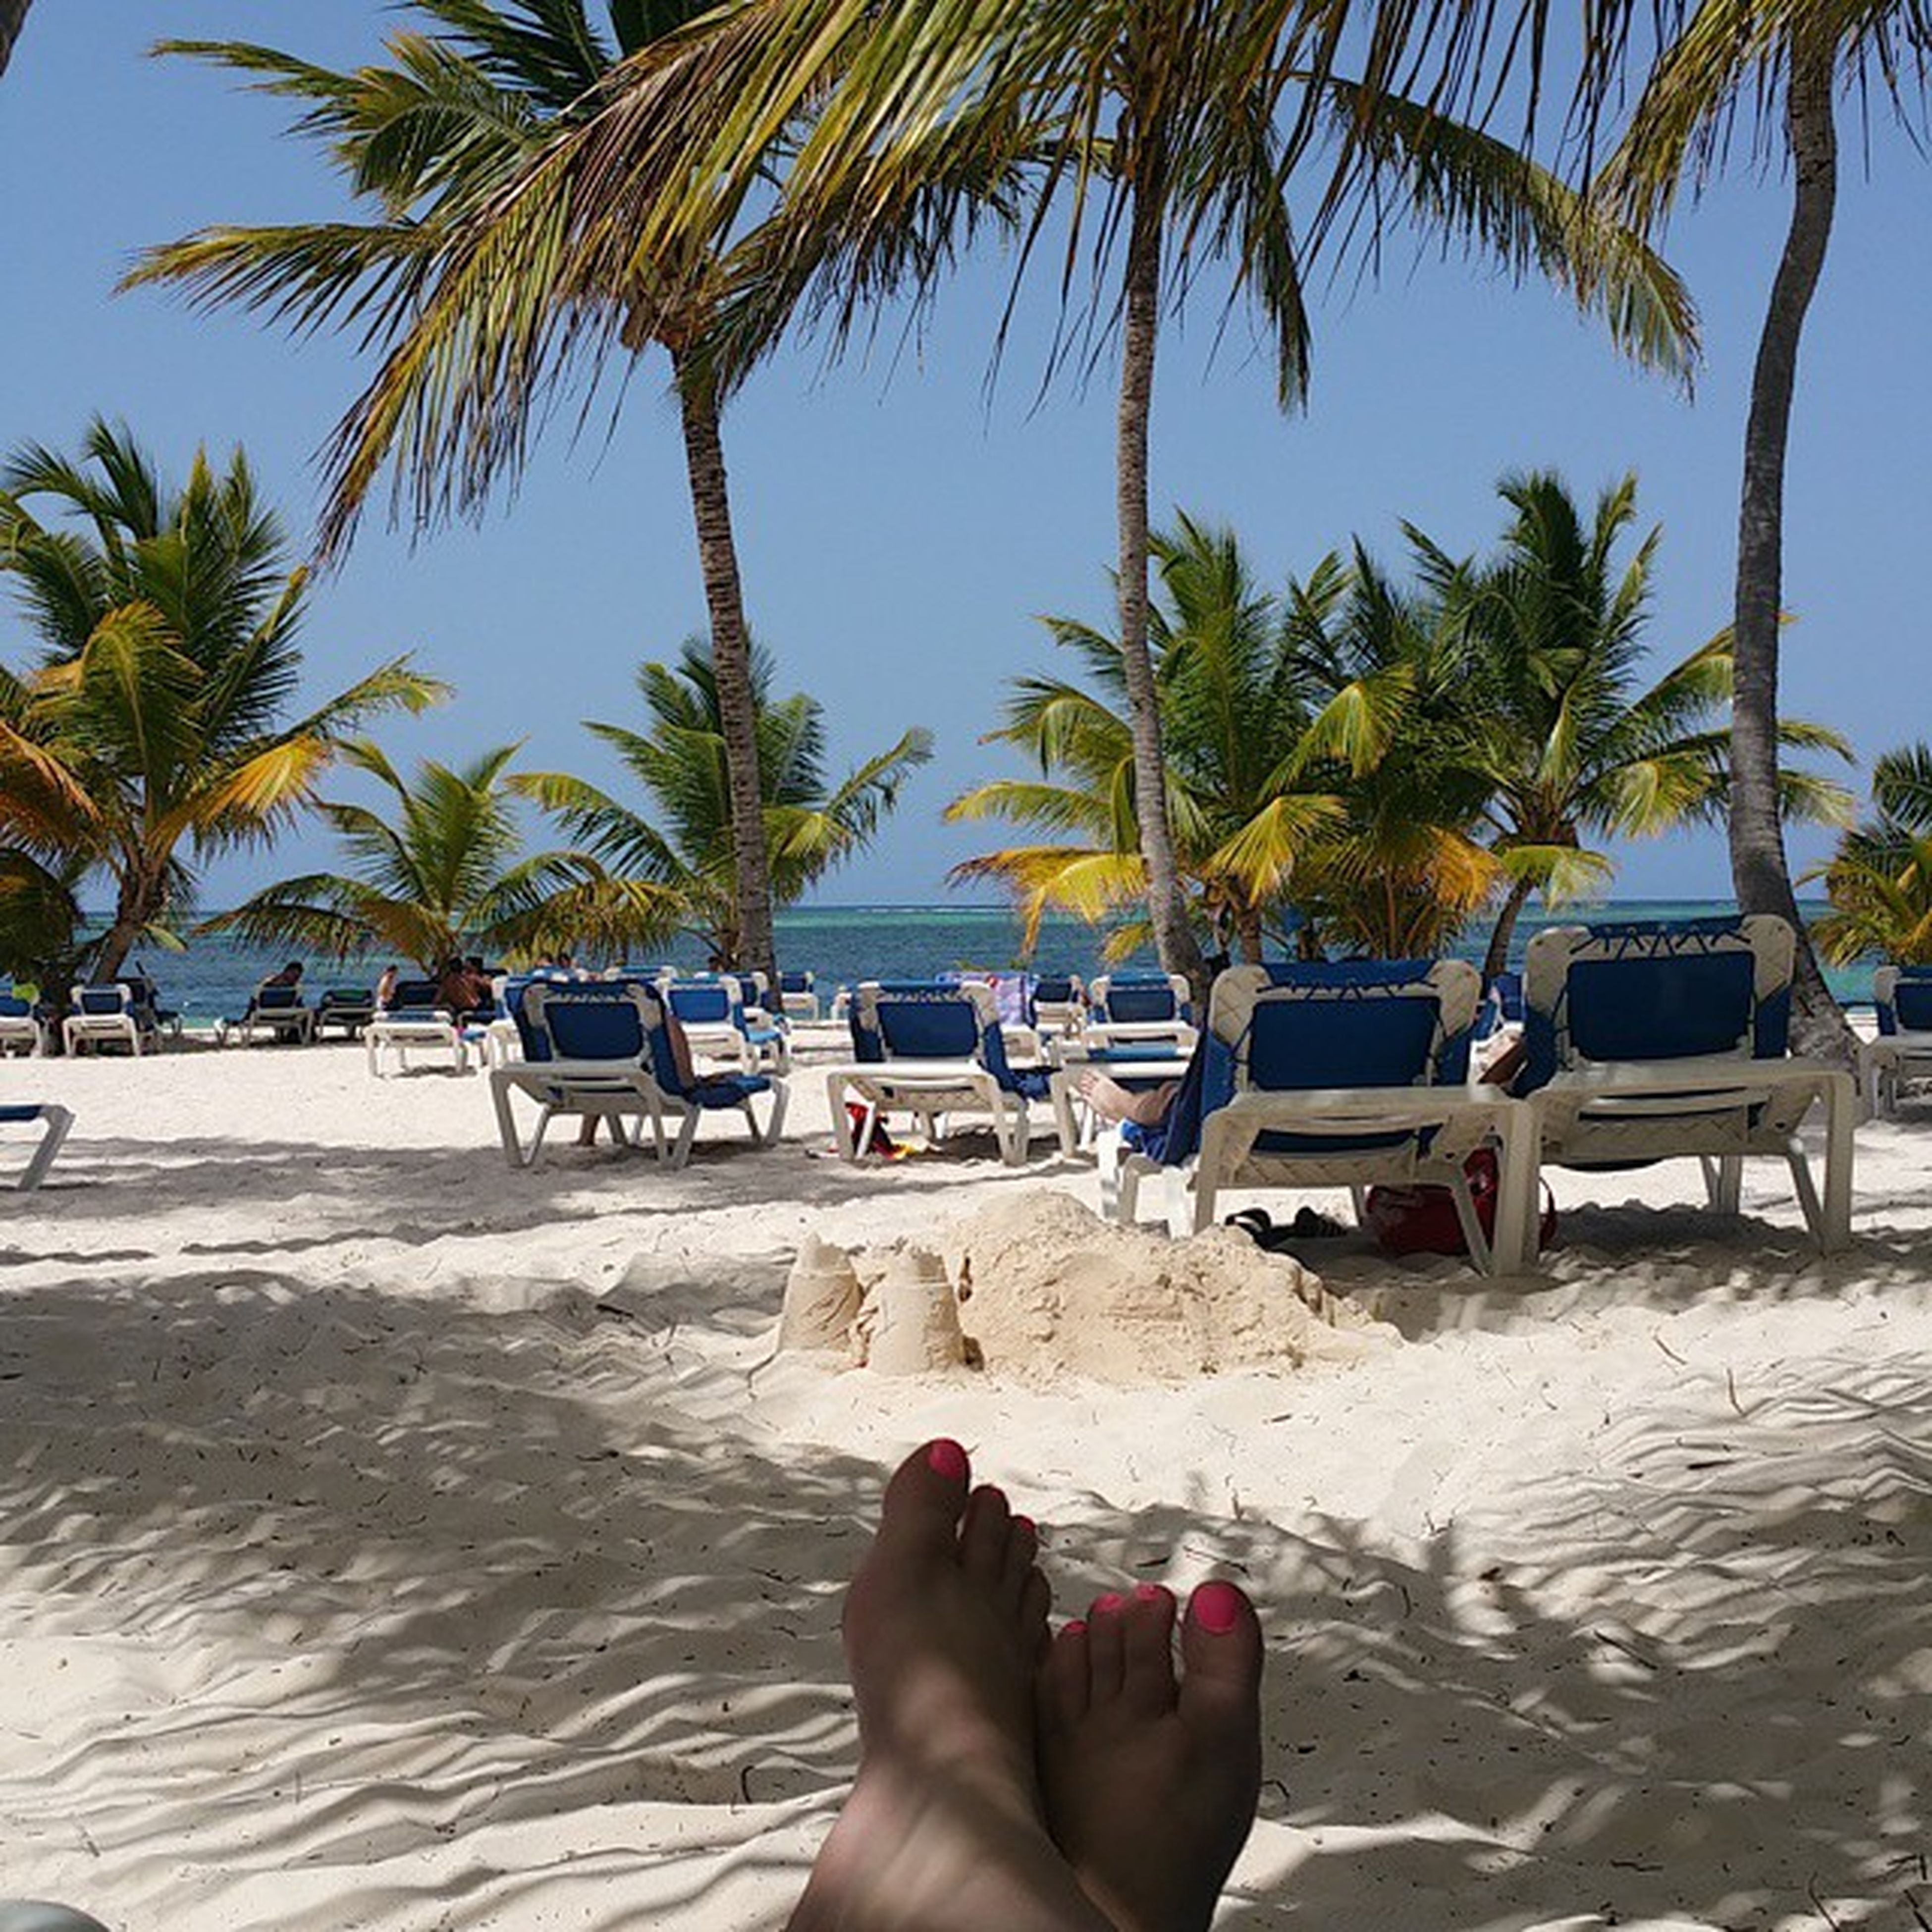 beach, water, sand, palm tree, sea, tree, shore, personal perspective, relaxation, lifestyles, leisure activity, vacations, low section, barefoot, person, lounge chair